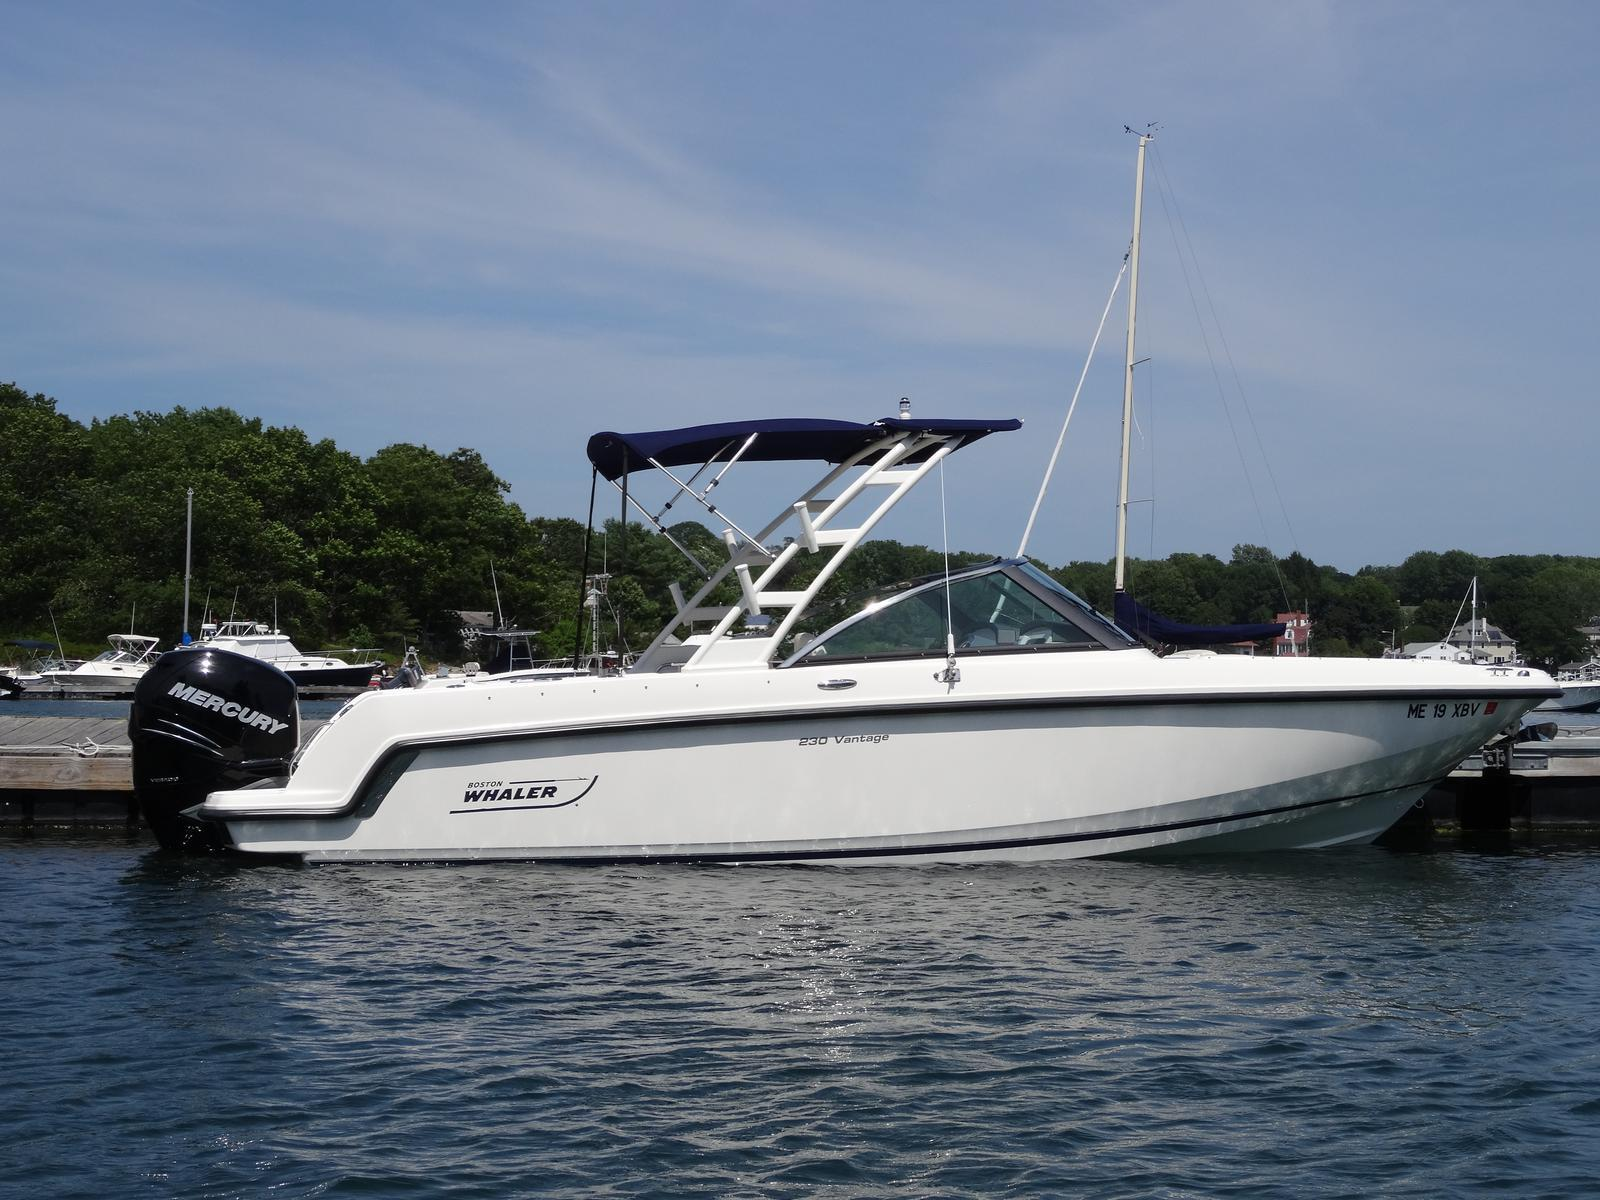 Used boston whaler boats for sale in maine united states for Motor yachts for sale near me